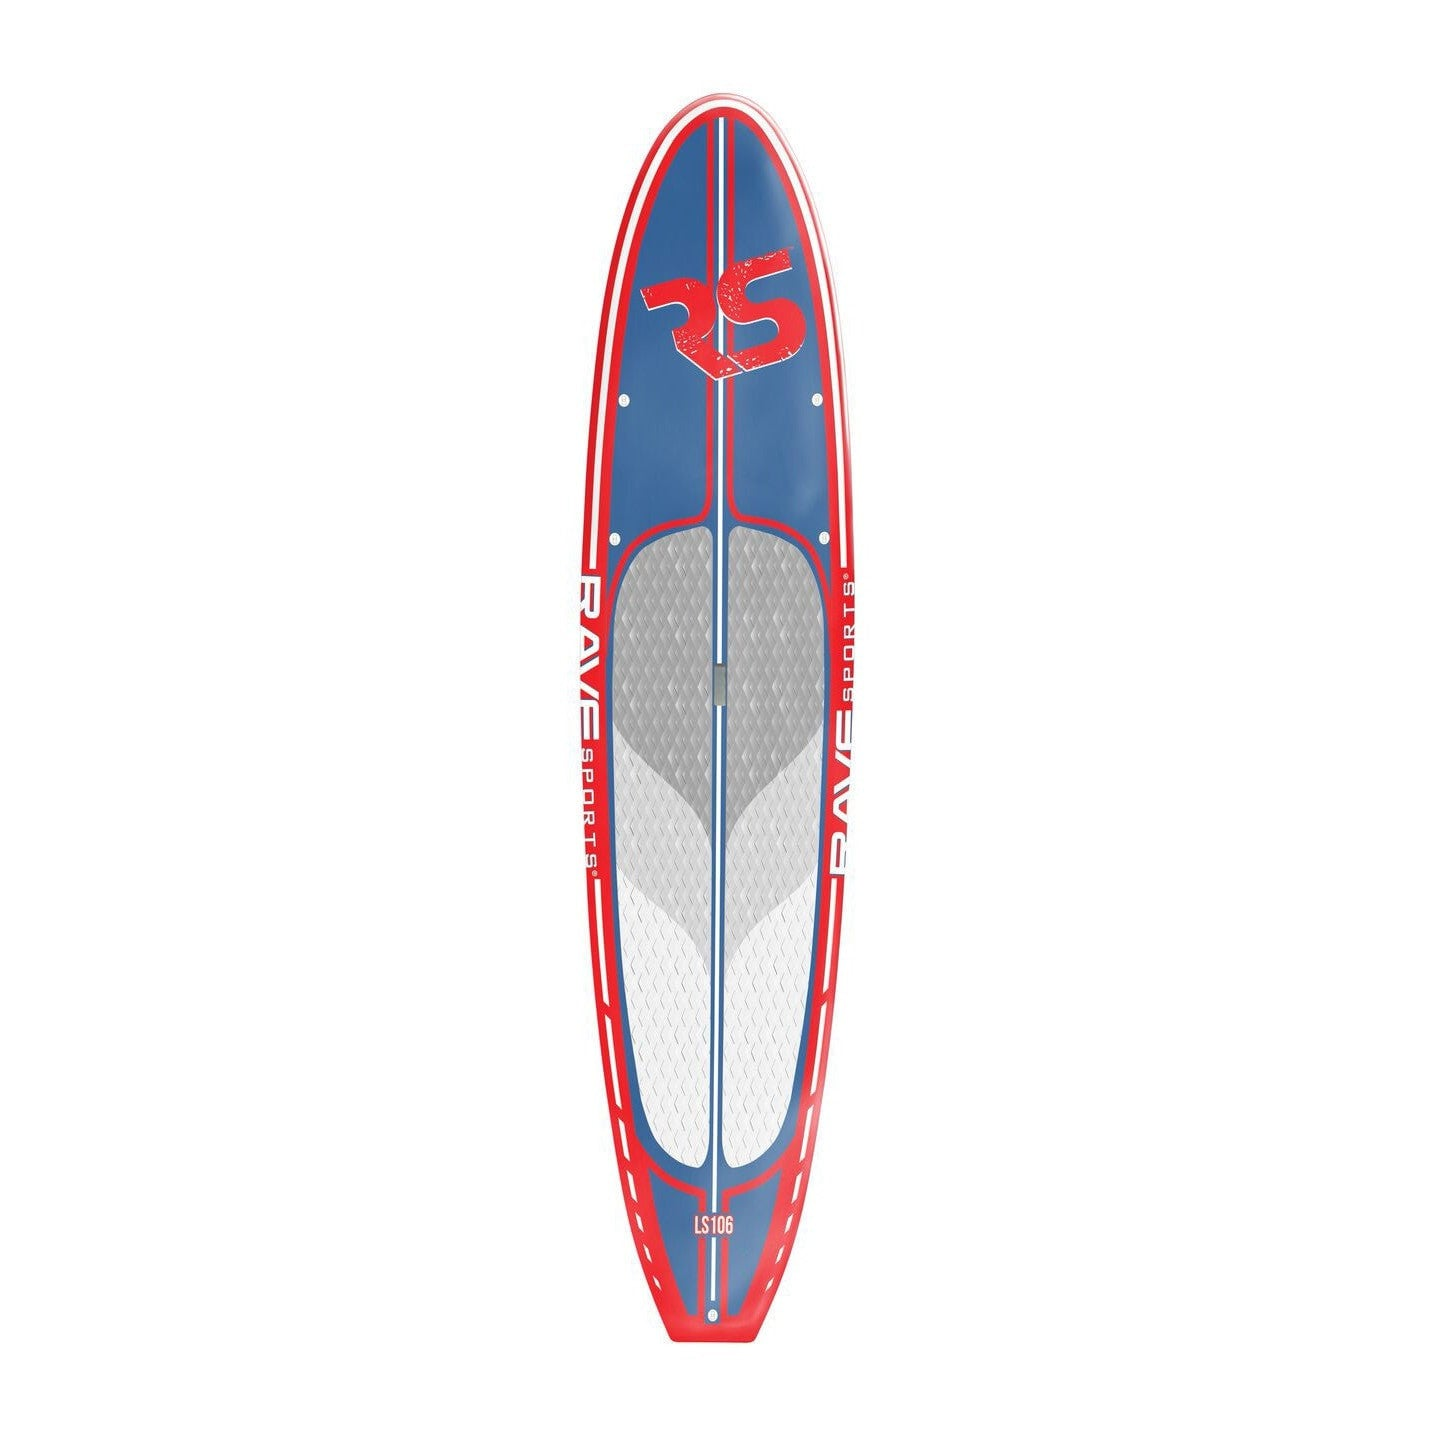 Rave Sports Lake Cruiser LS106 Stand Up Paddle Board SUP - 02734 - Kayak Creek